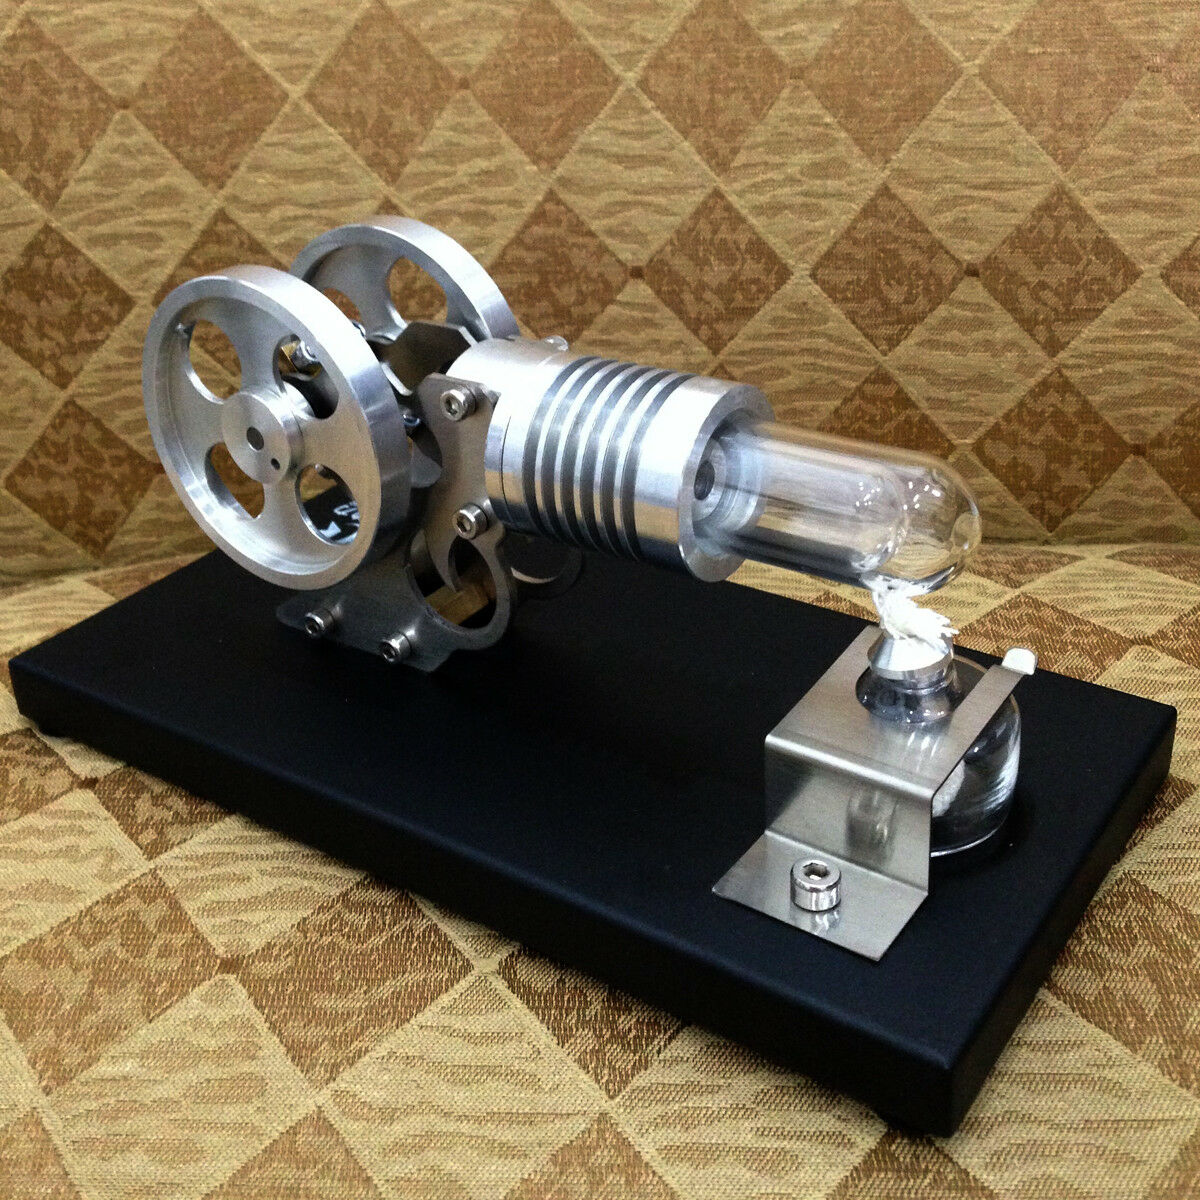 Hot Air Stirling Engine Generator Motor Toy Mini Manson Engine Power Generator